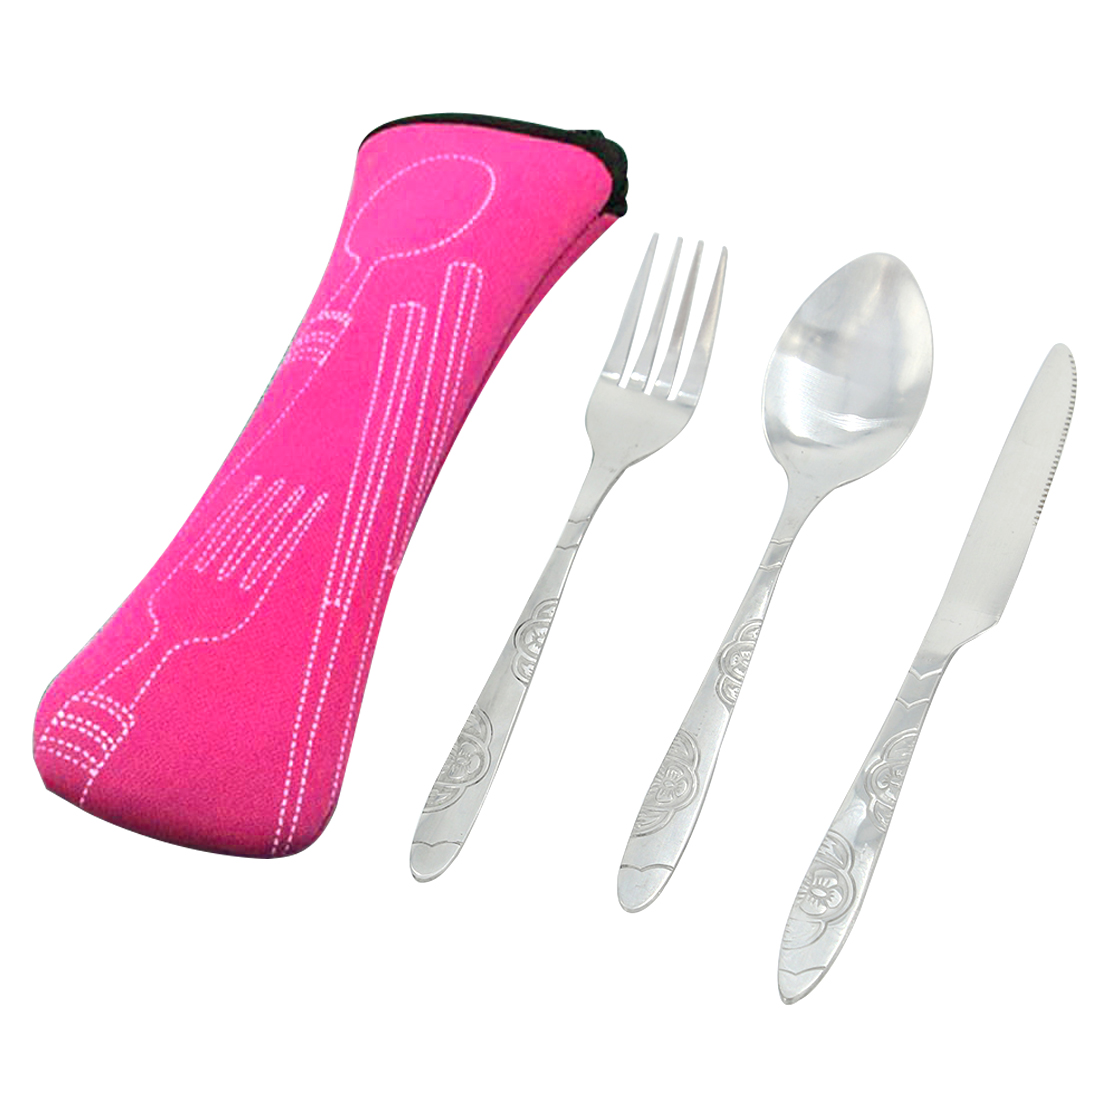 3Pcs Stainless Steel Portable Tableware Dinnerware Travel Camping Cutlery Set Patterned Fork Spoon Knife Set - Silver(Rosy Cloth Bag)